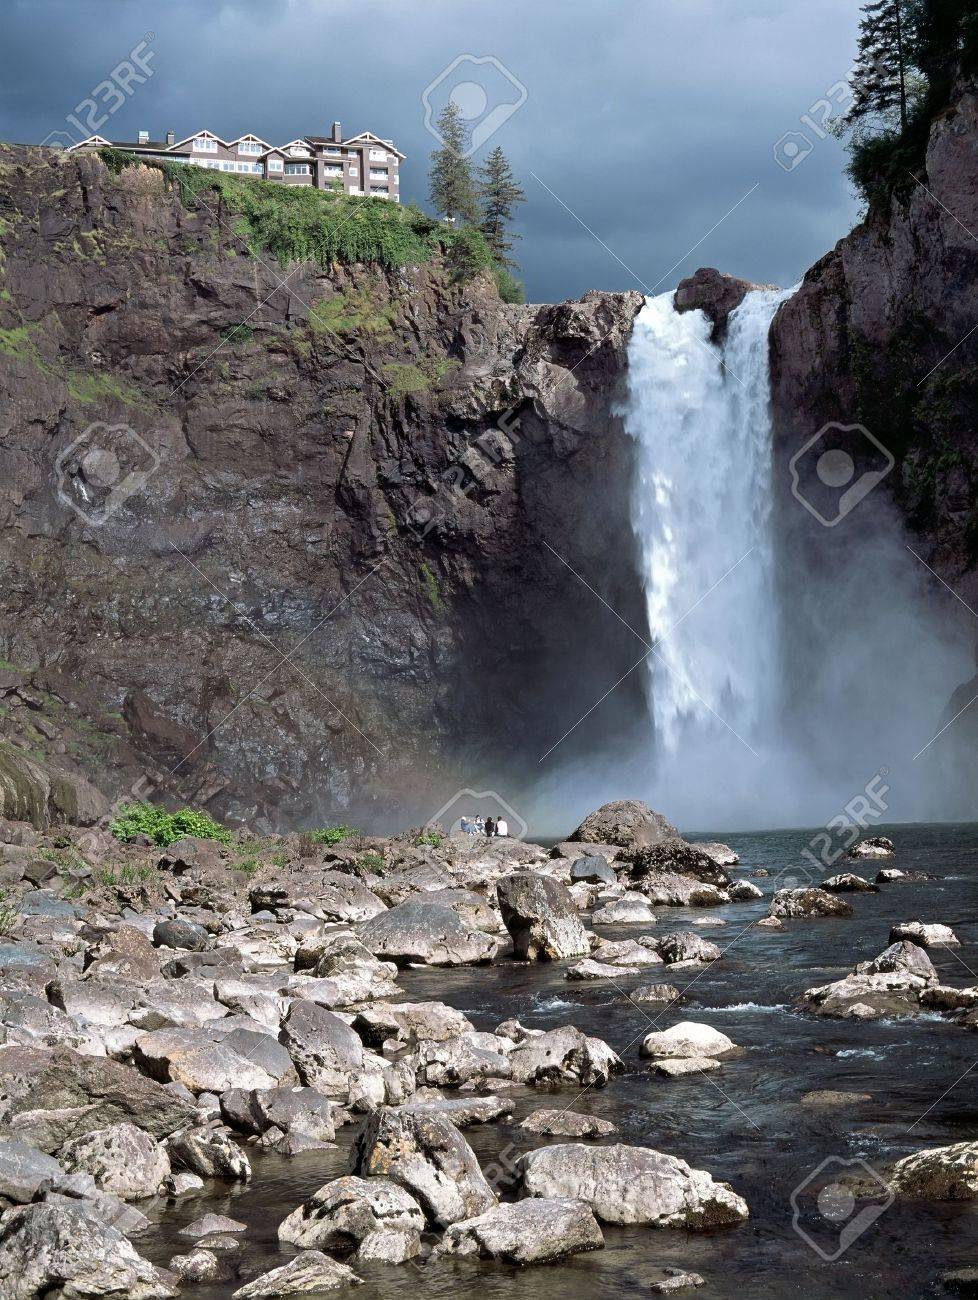 Snoqualmie Falls attraction east of Seattle Washington State USA Stock Photo - 11744325